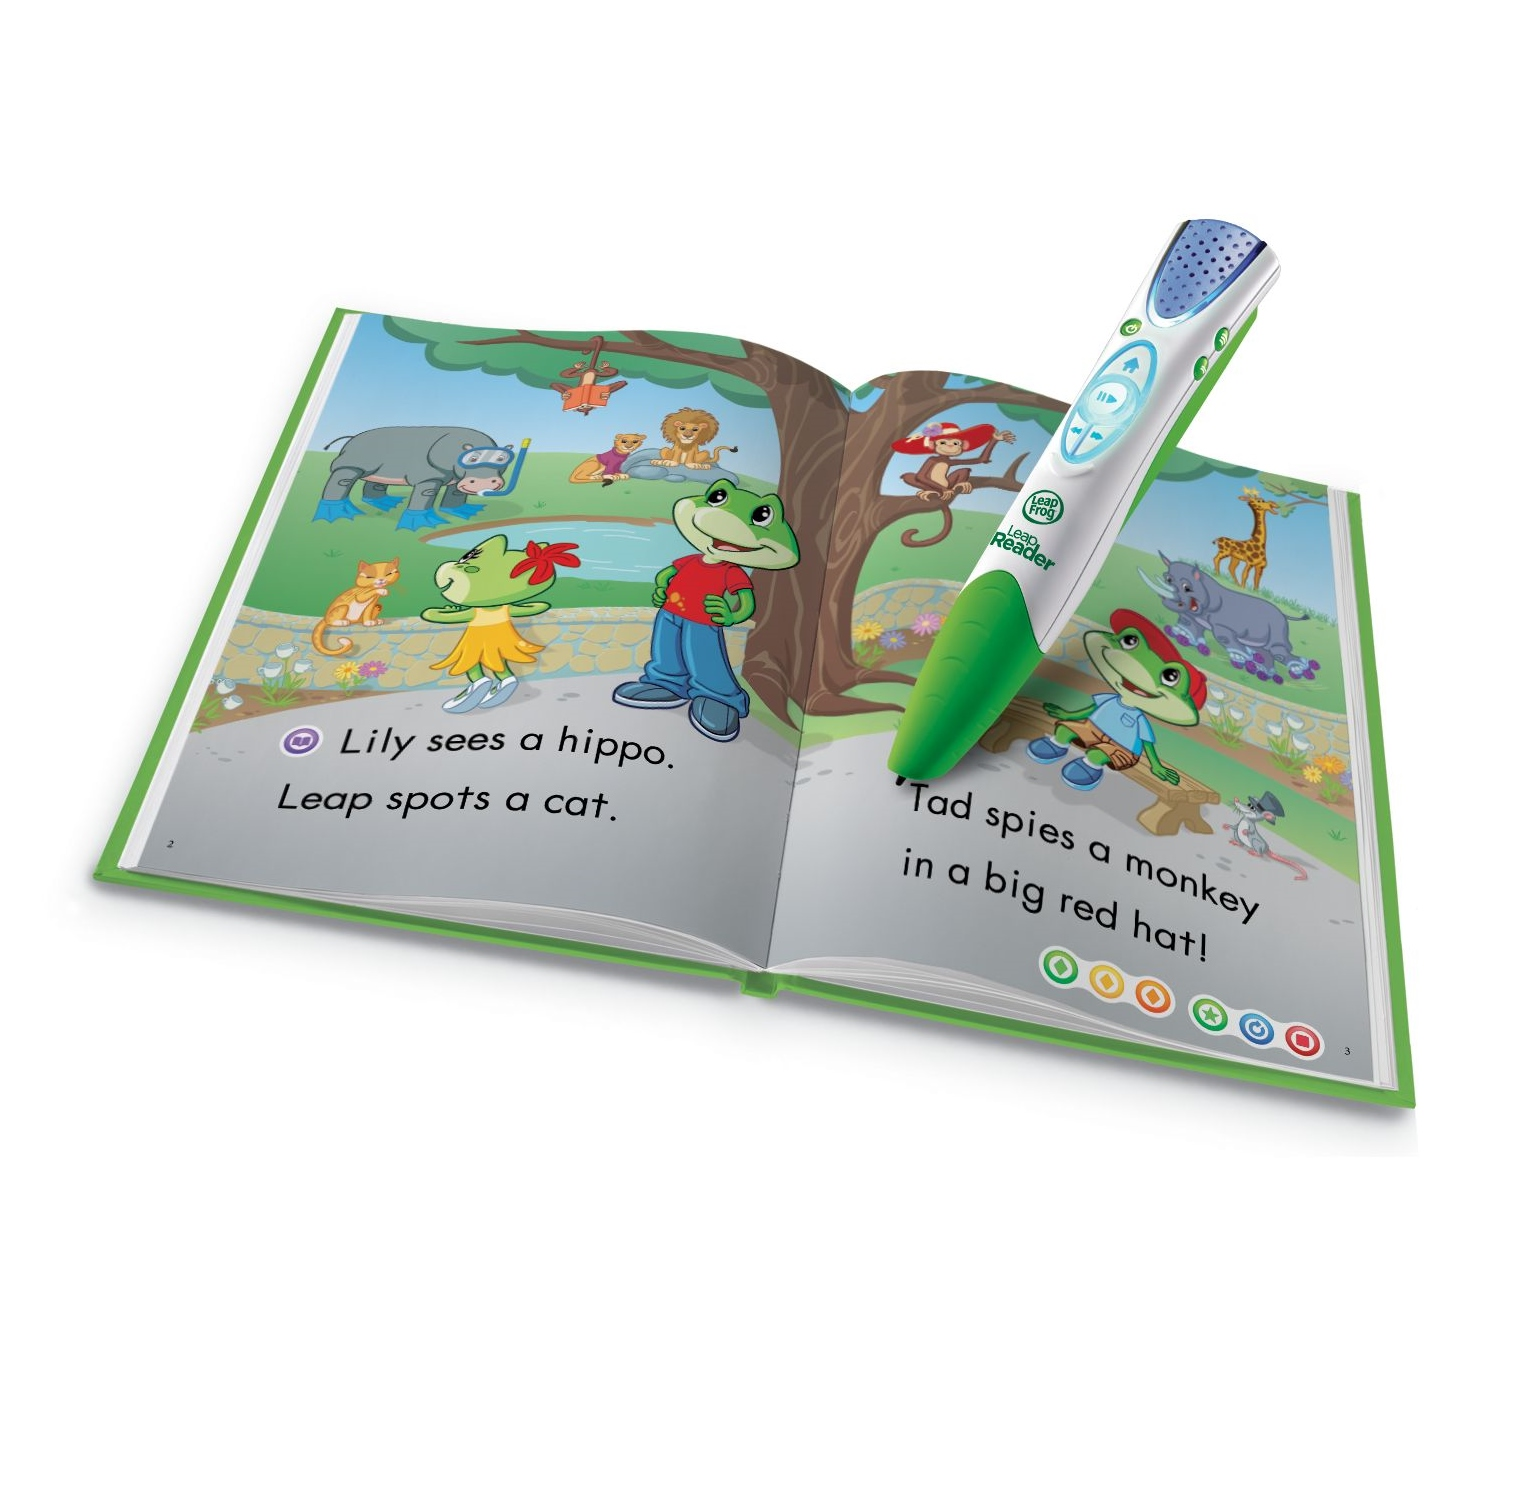 Win A Leapfrog Leapreader The Interactive Learn To Read Amp Write System For Children